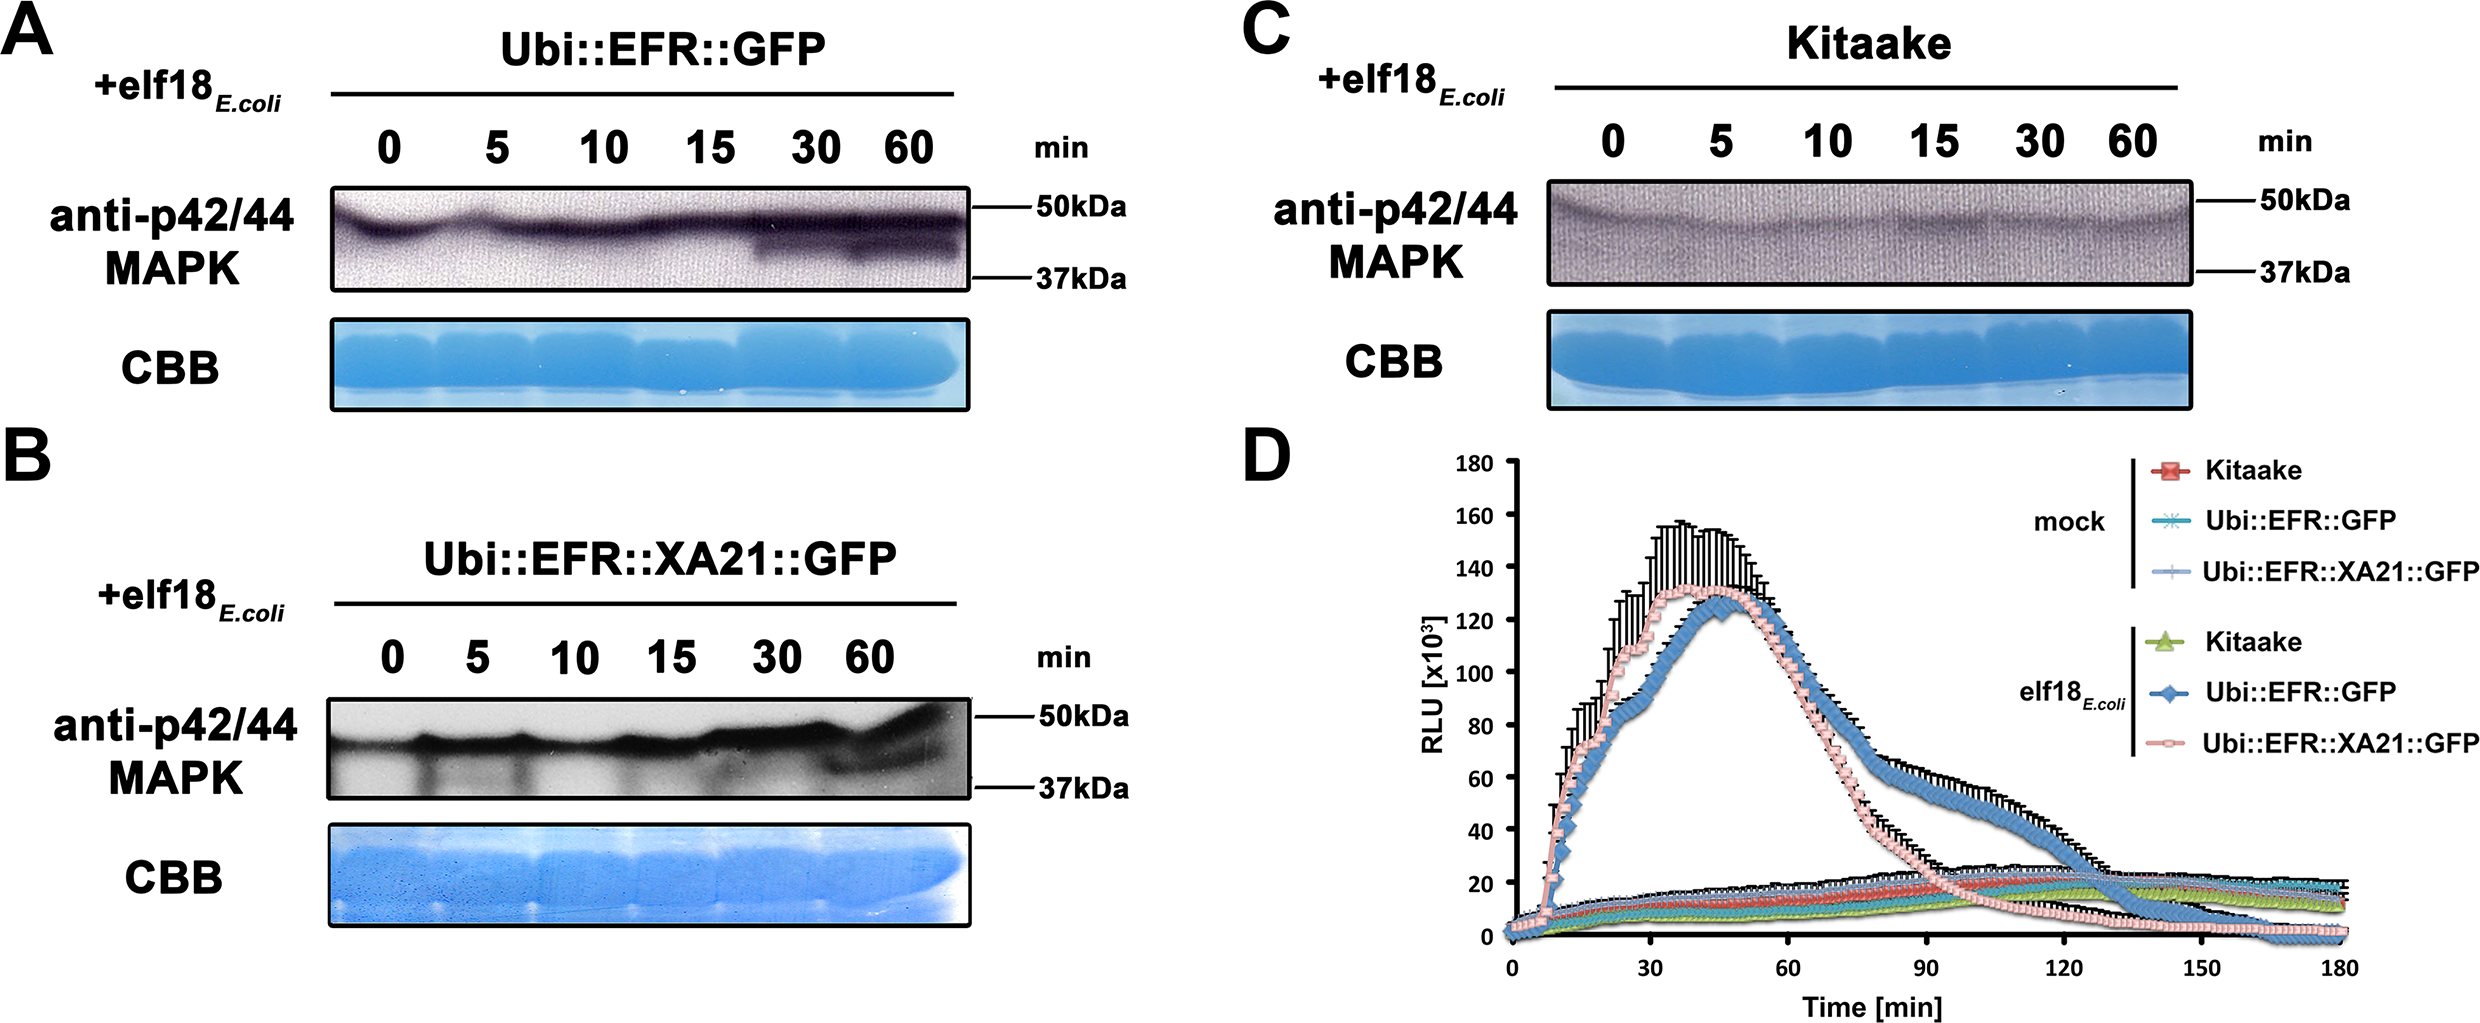 The perception of elf18<sub><i>E</i>.<i>coli</i></sub> in EFR and EFR::XA21 rice plants activates several MAP kinases and ROS production.